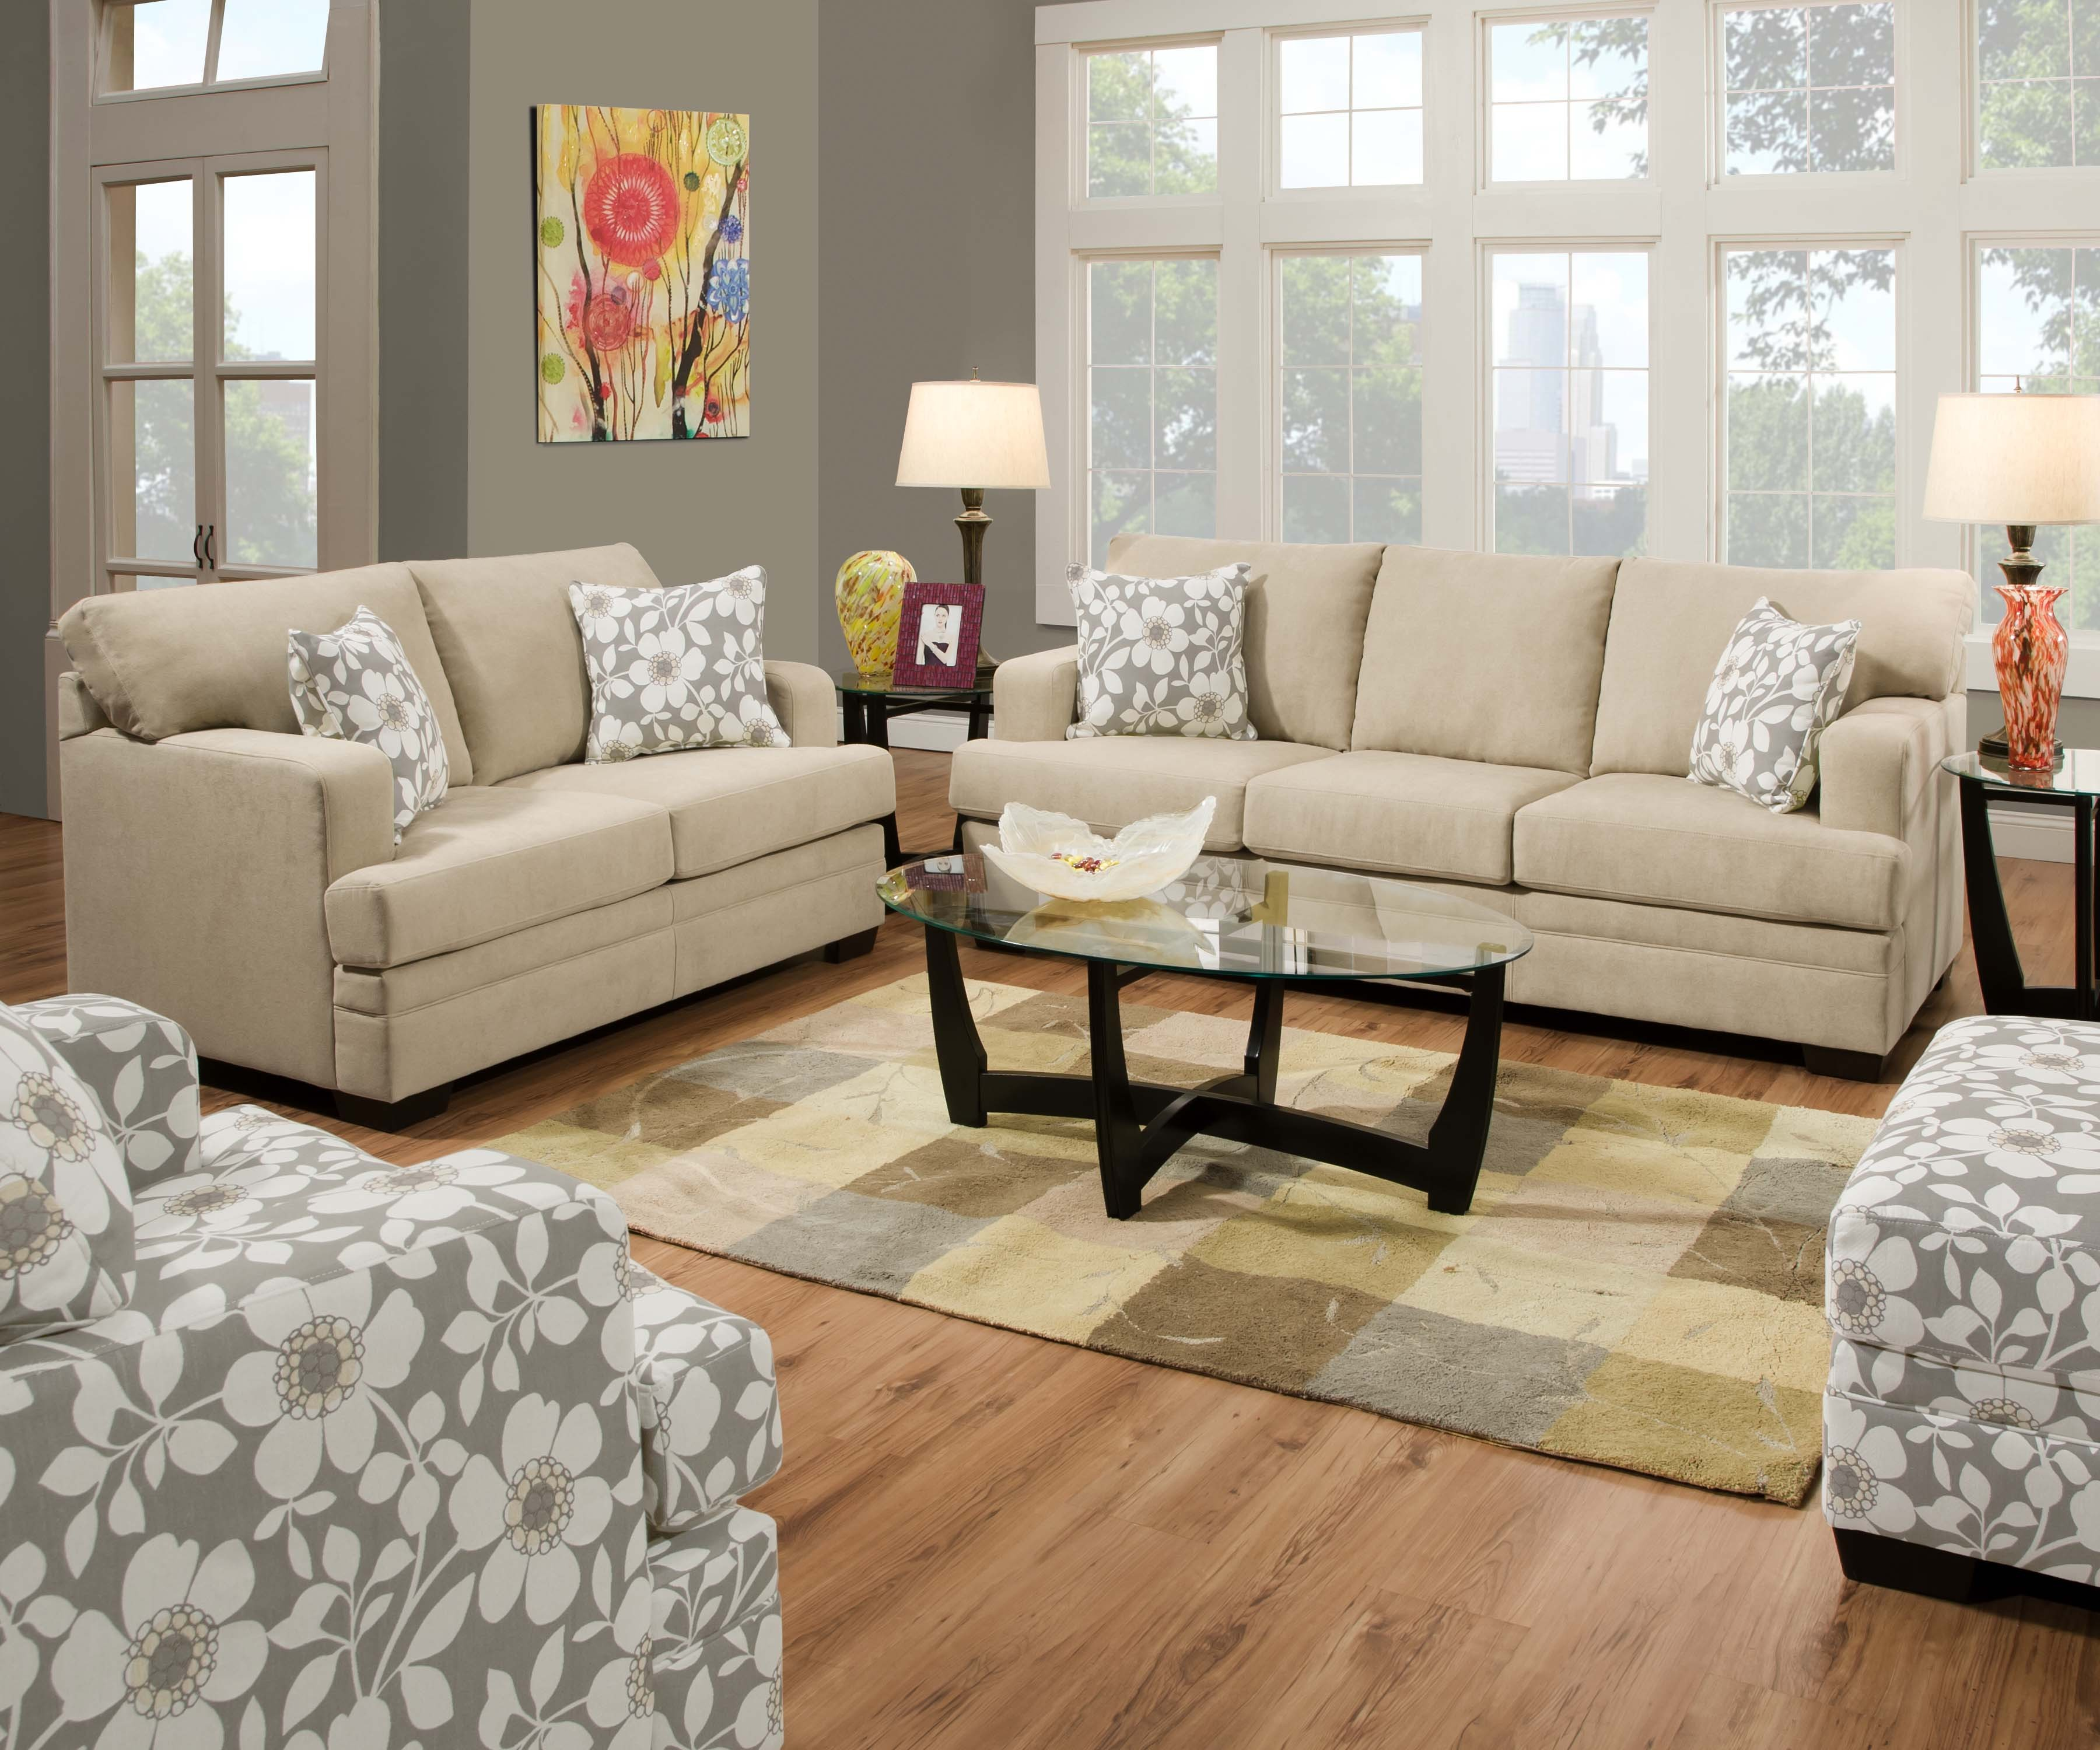 6491 Caprice Hemp Springfield Furniture Direct